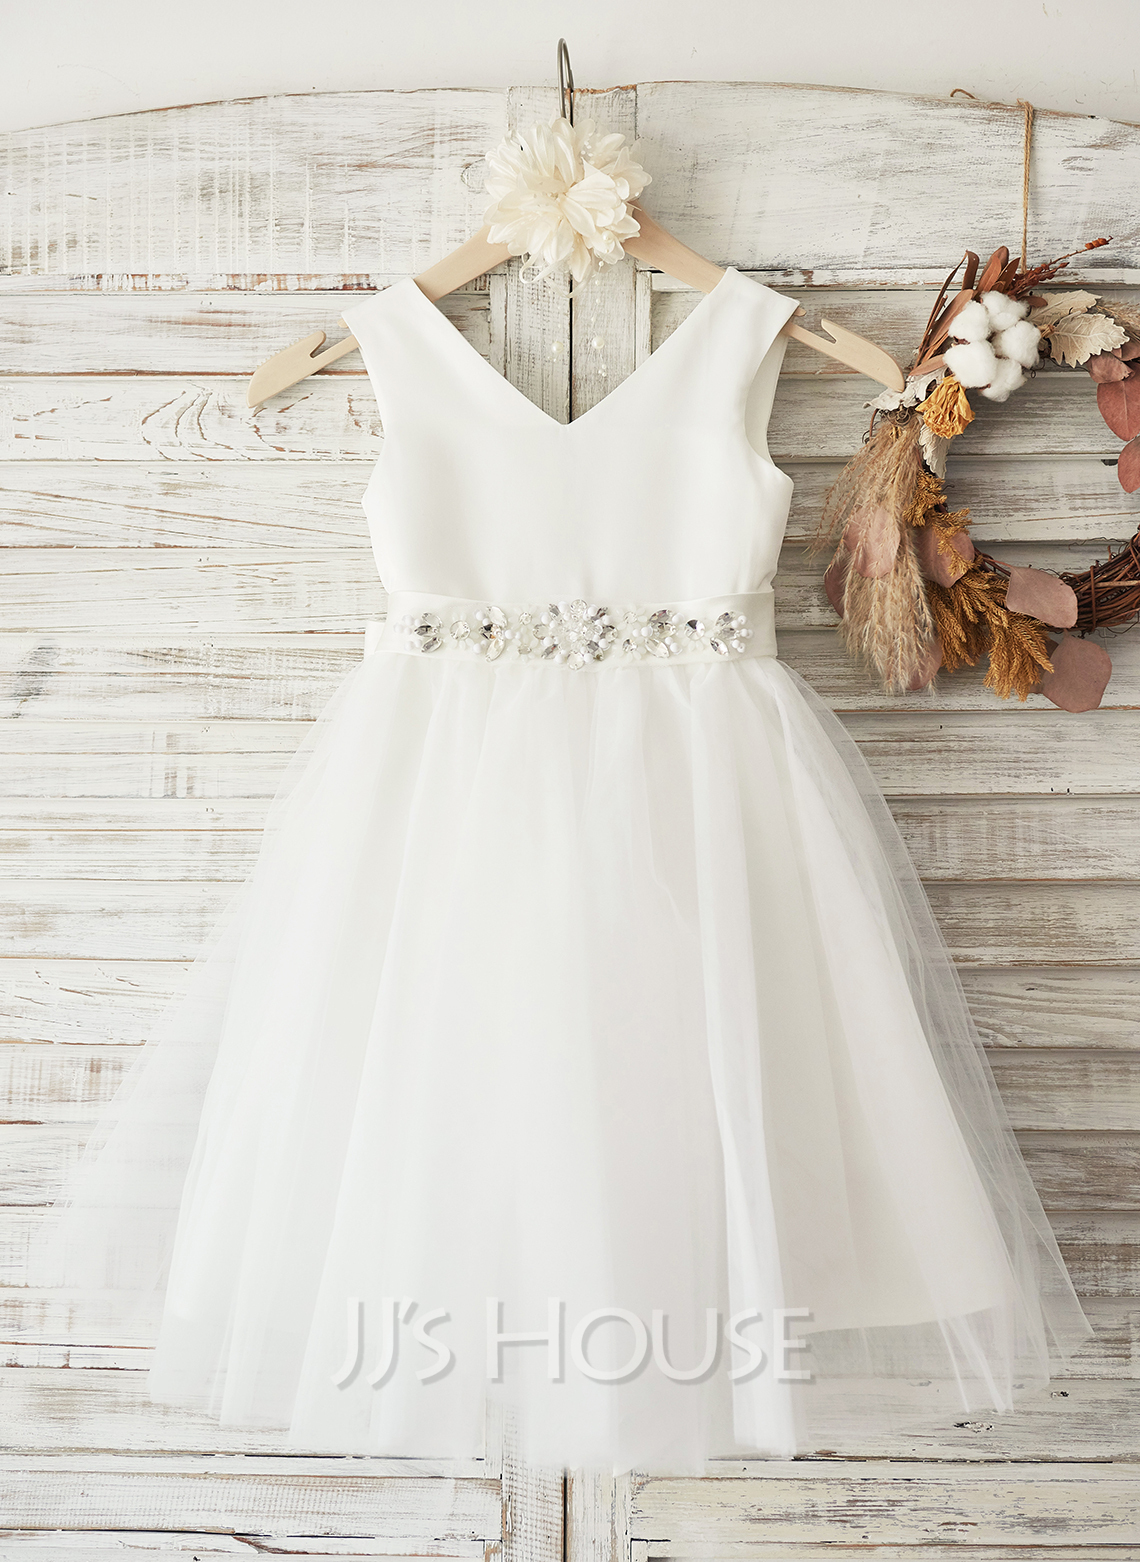 A-Line/Princess Knee-length Flower Girl Dress - Satin Tulle Sleeveless V-neck With Bow(s) Rhinestone